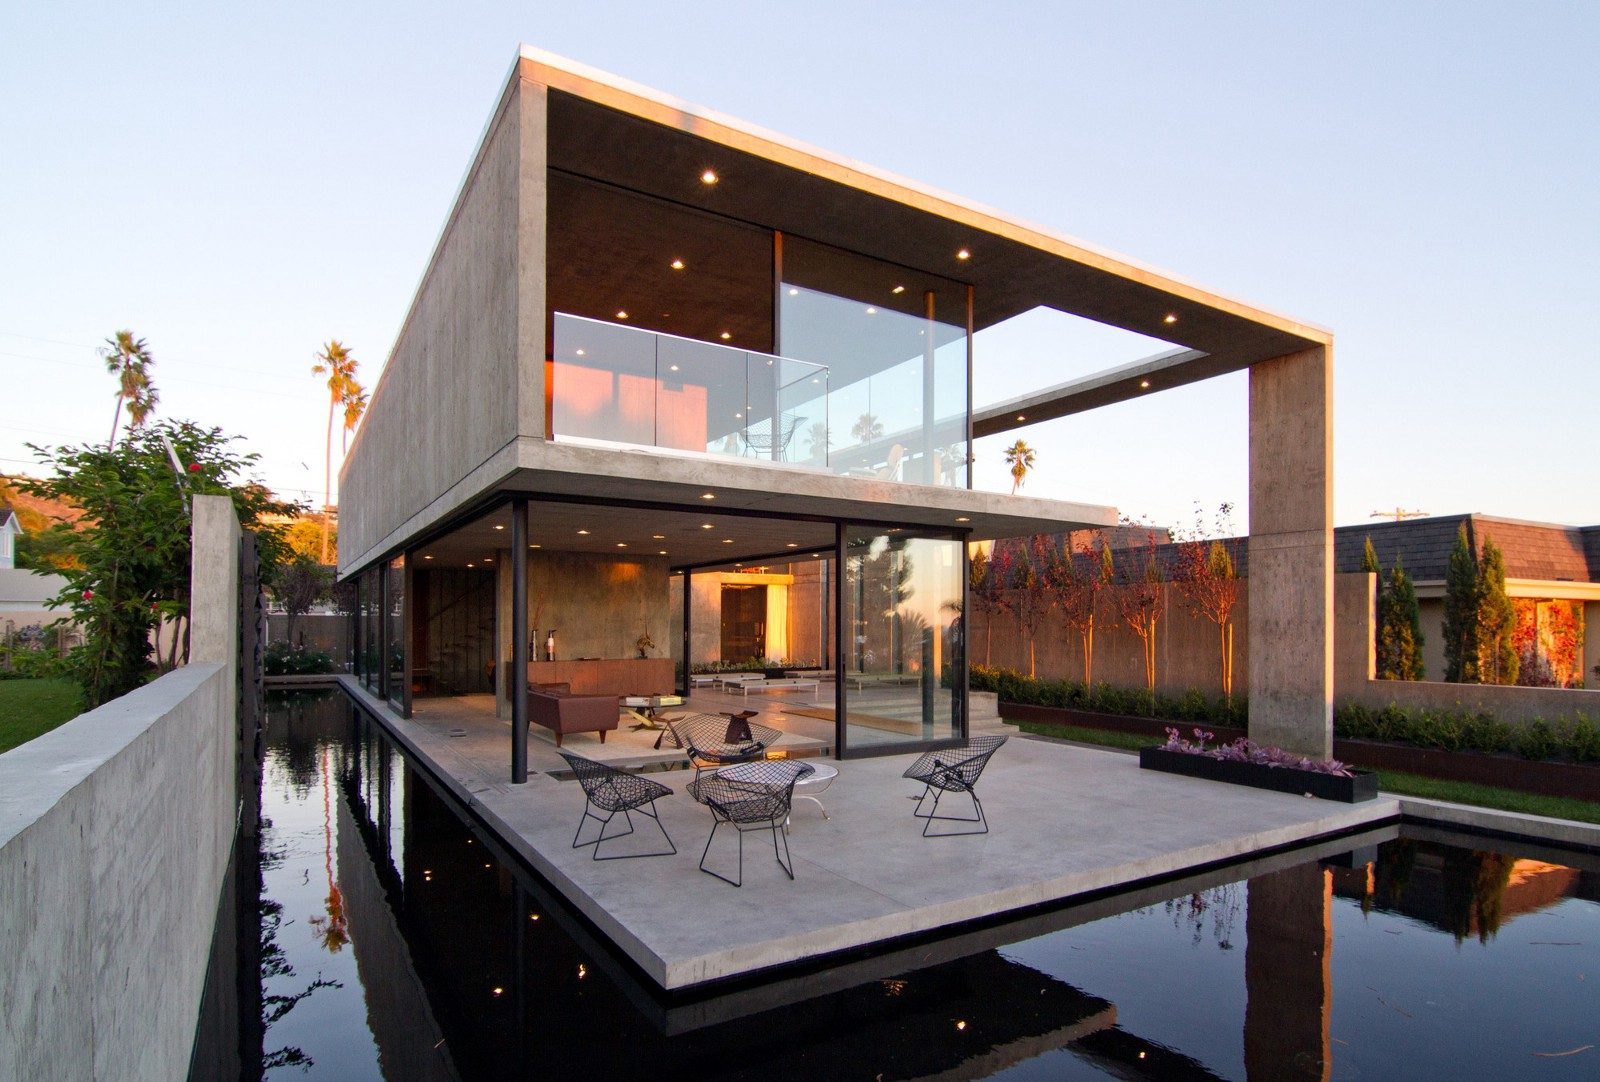 Modeco House By Curt Cline U2014 Modern House Architects, Photography Courtesy  Of Modern House Architects.